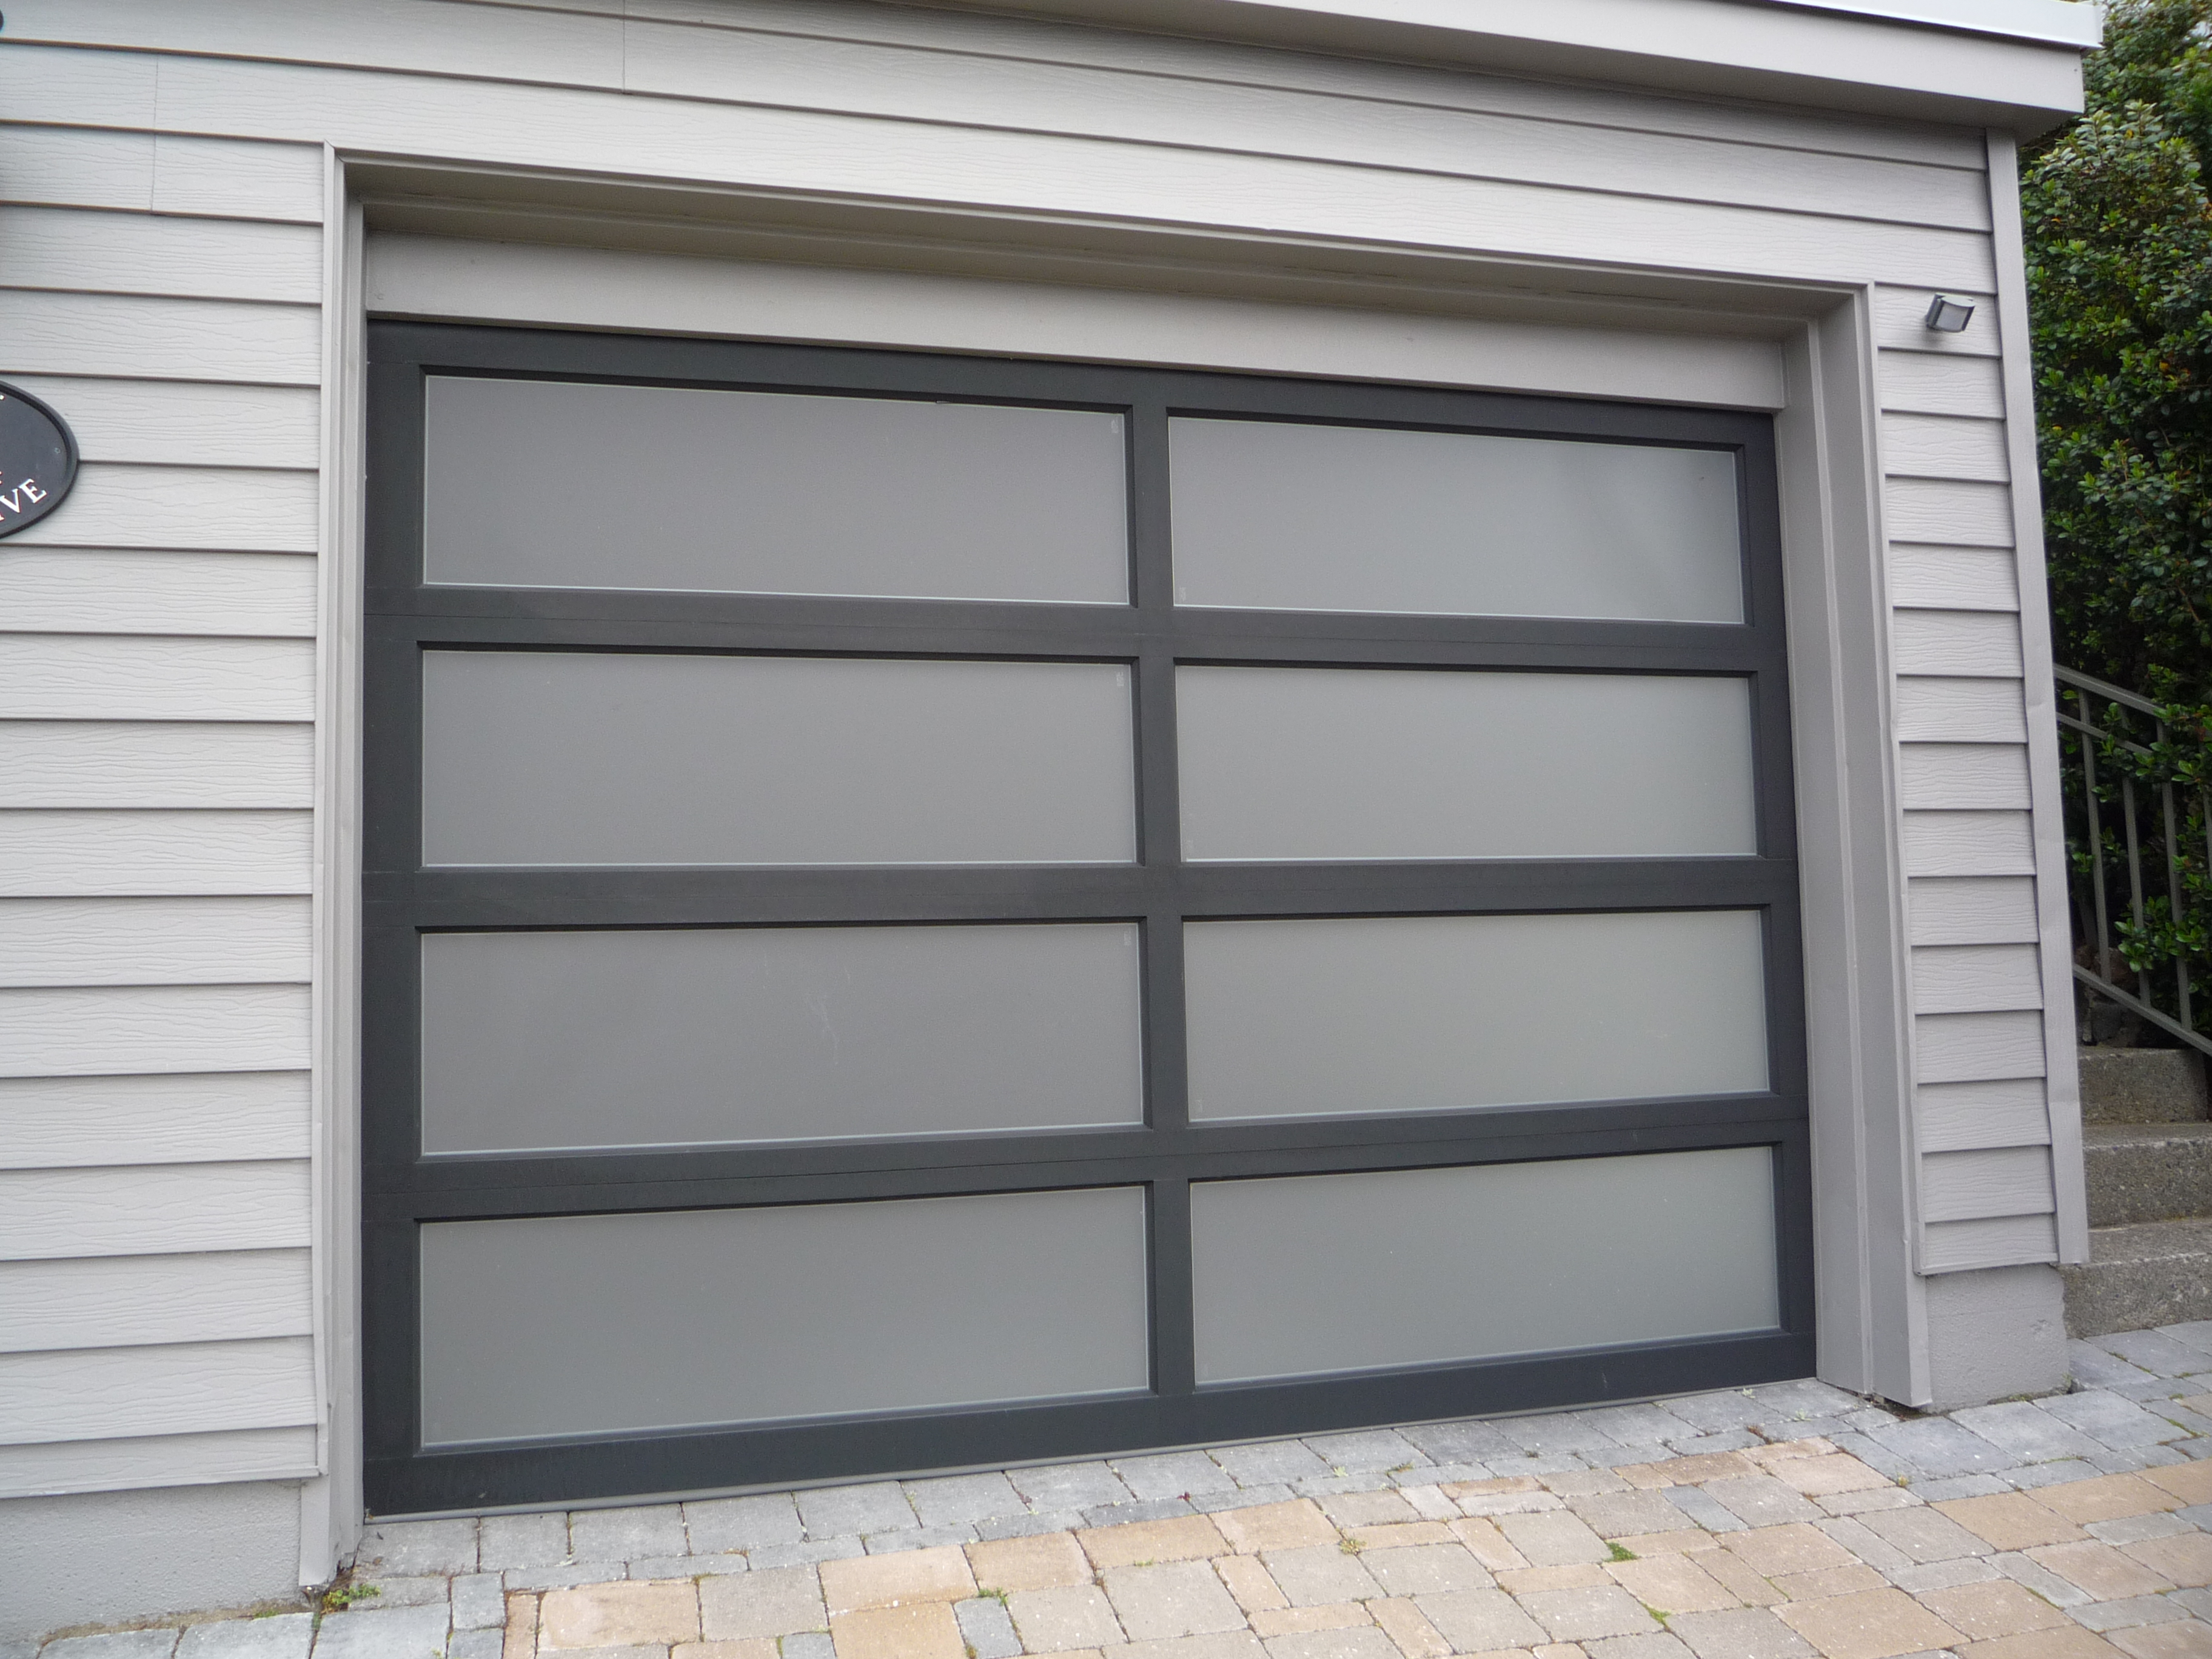 2736 #786553 Full View Aluminum View The Product Info Previous Next image Full View Aluminum Garage Doors 37233648